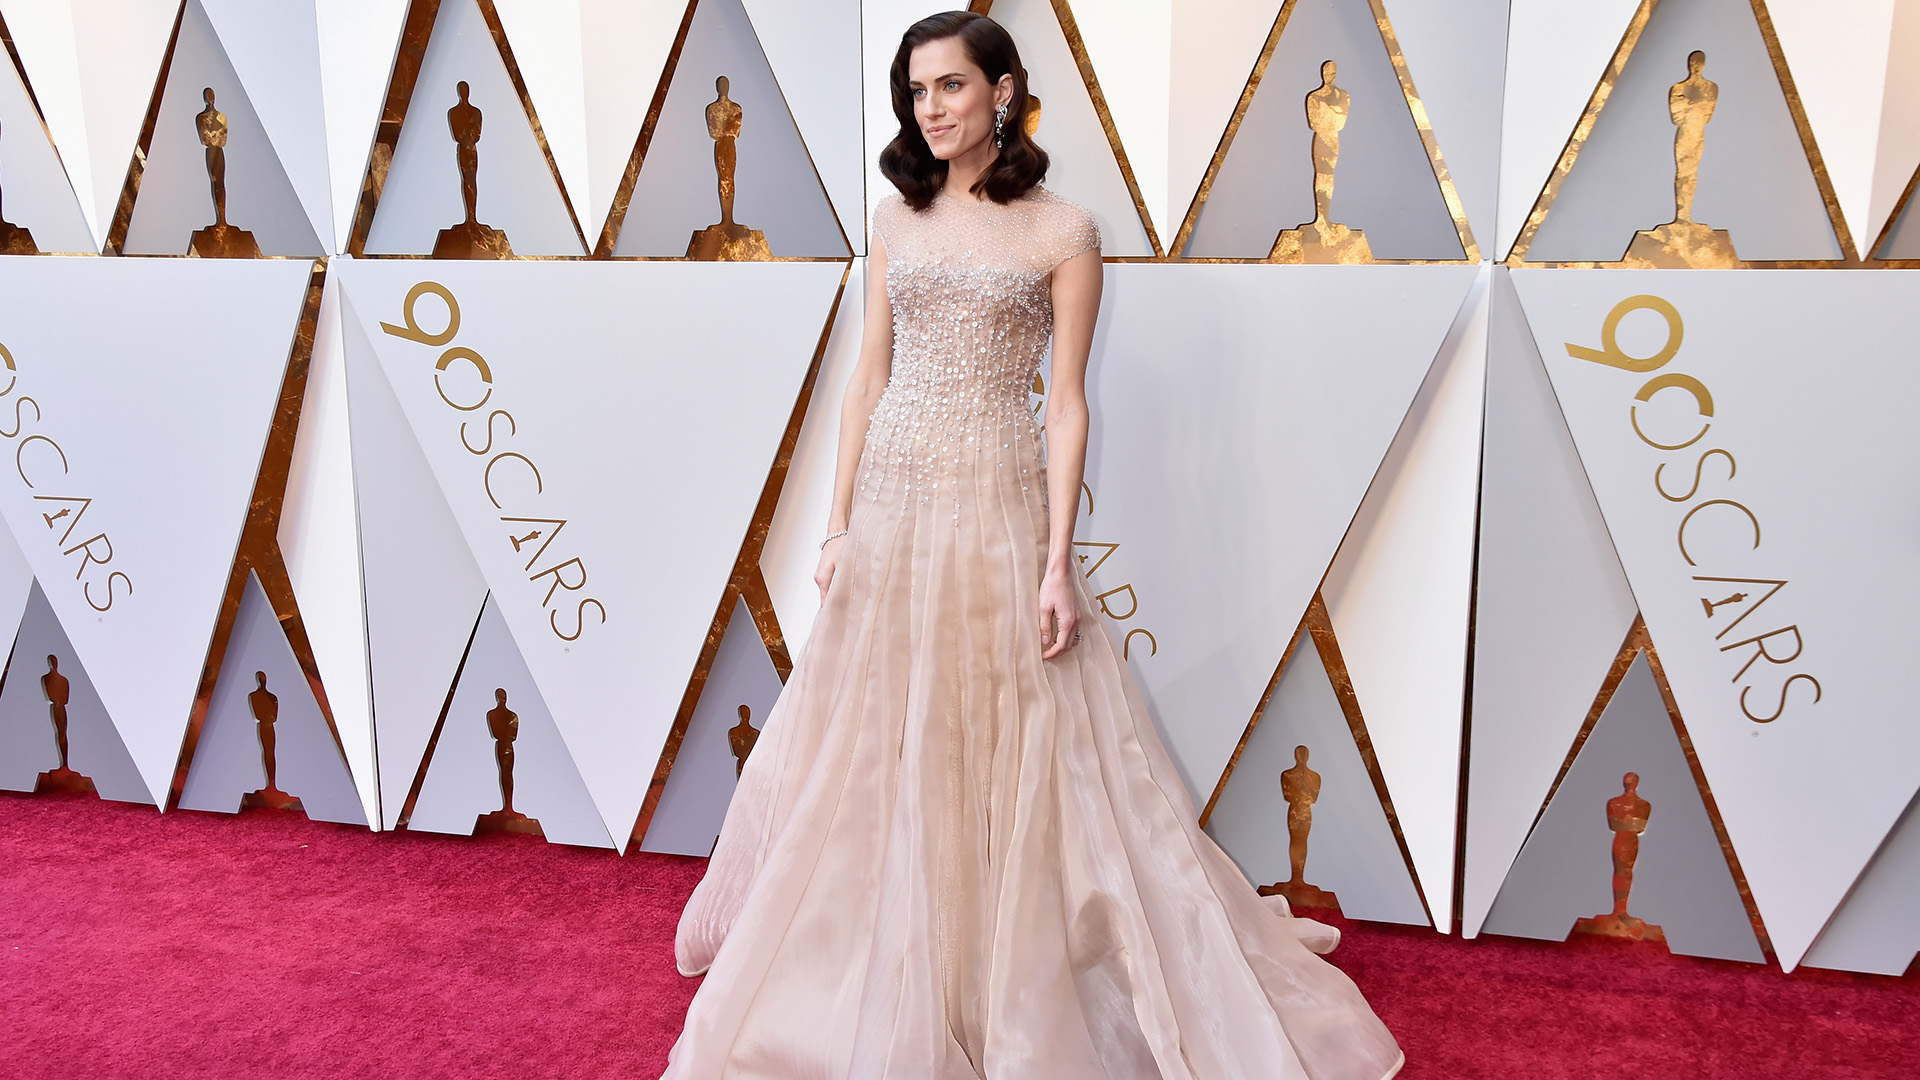 The Best-Dressed Celebrities from the 2018 Oscars Red Carpet